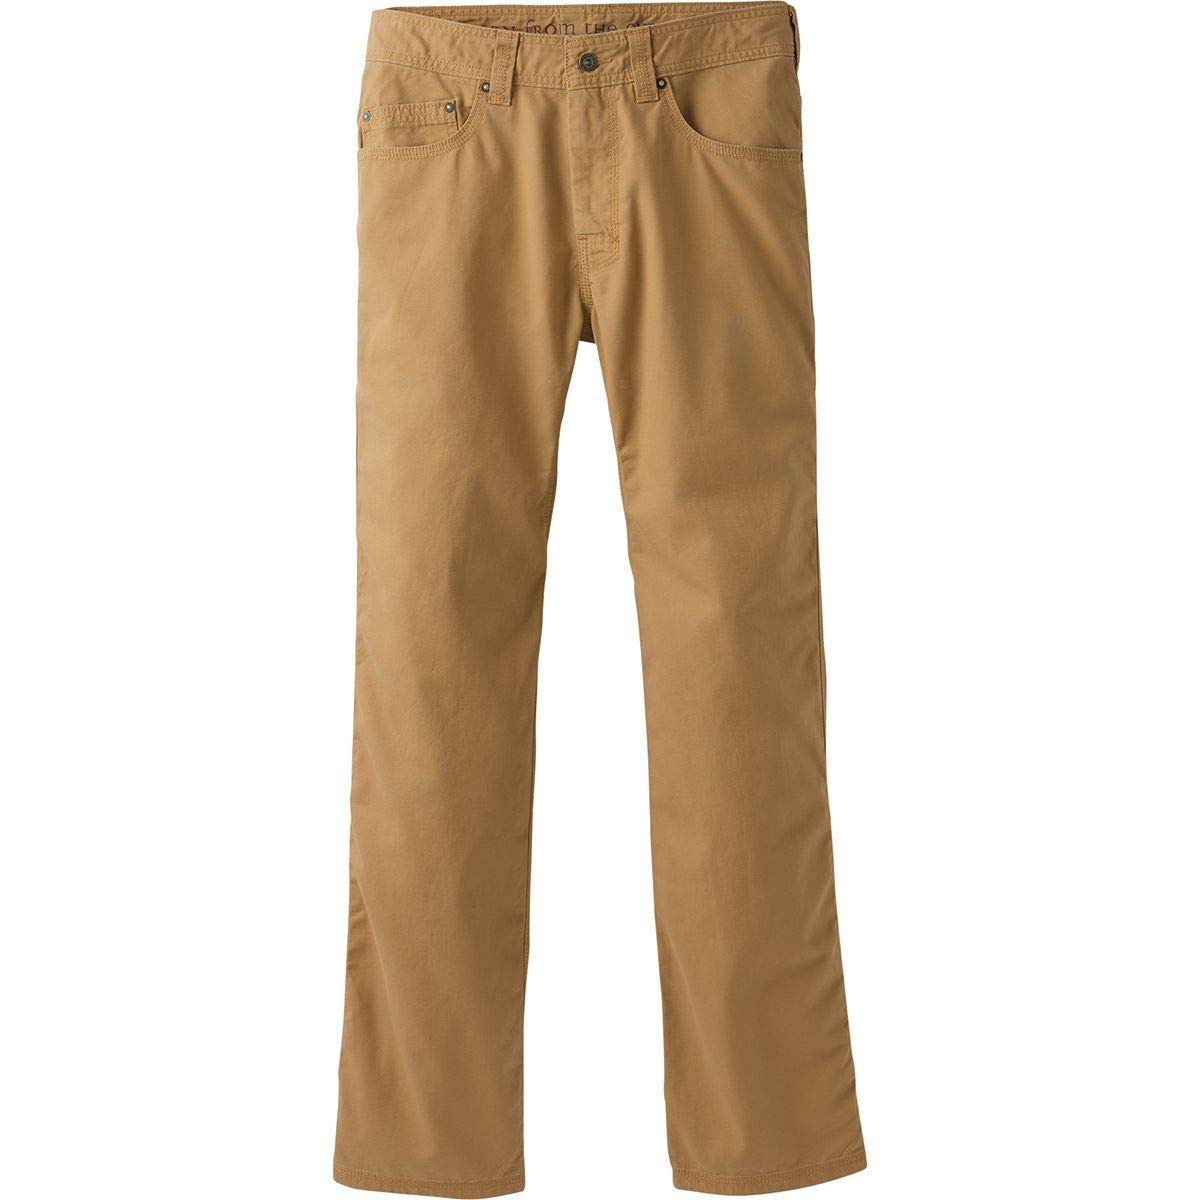 Embark marron US 31   S Bronson Pant 32 Inseam - Pantalon Homme